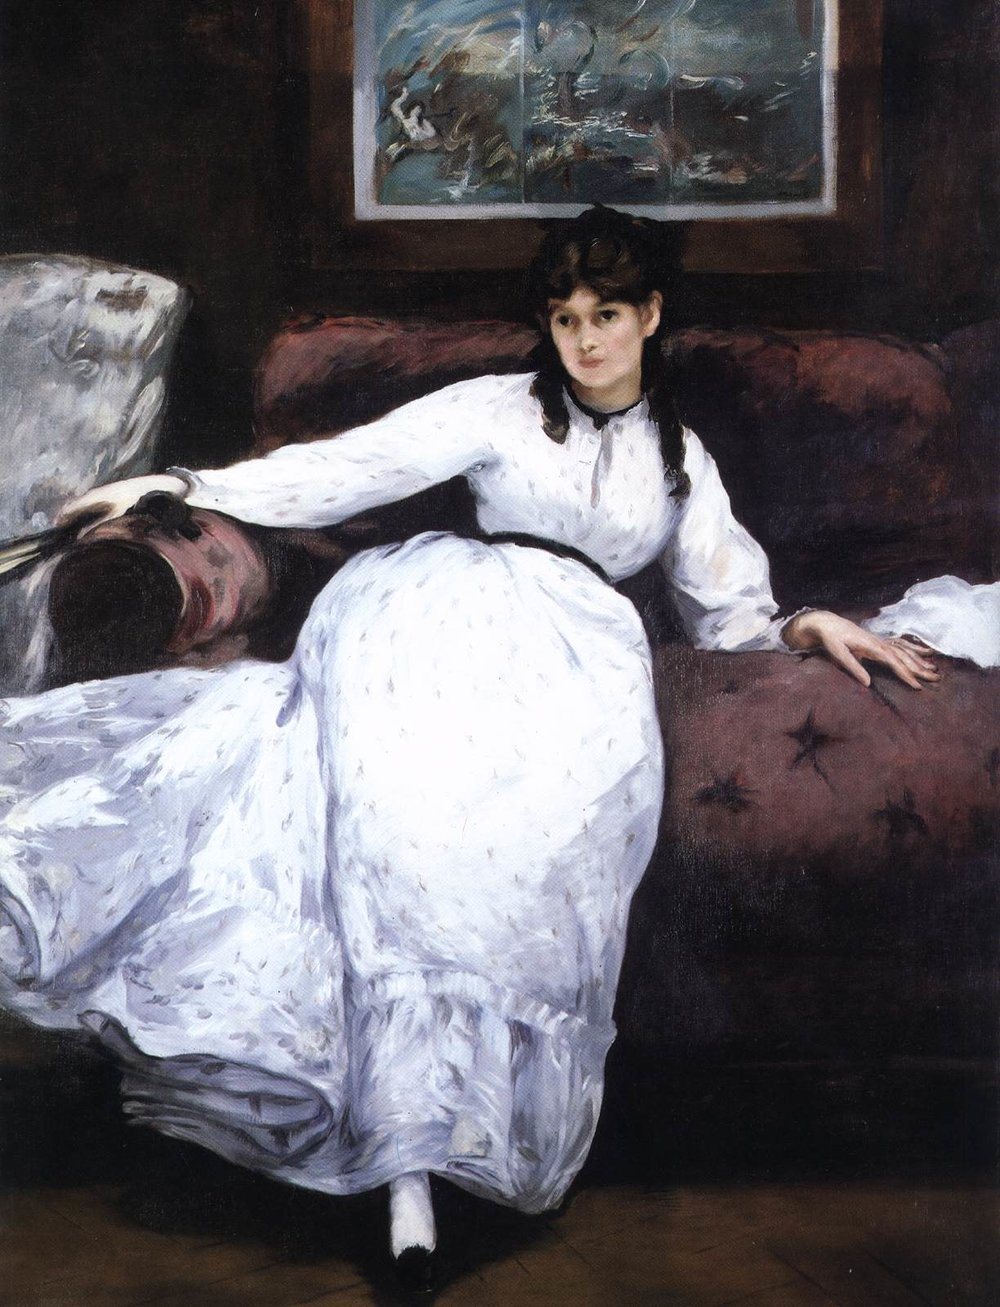 Édouard Manet, The Repose, 1870